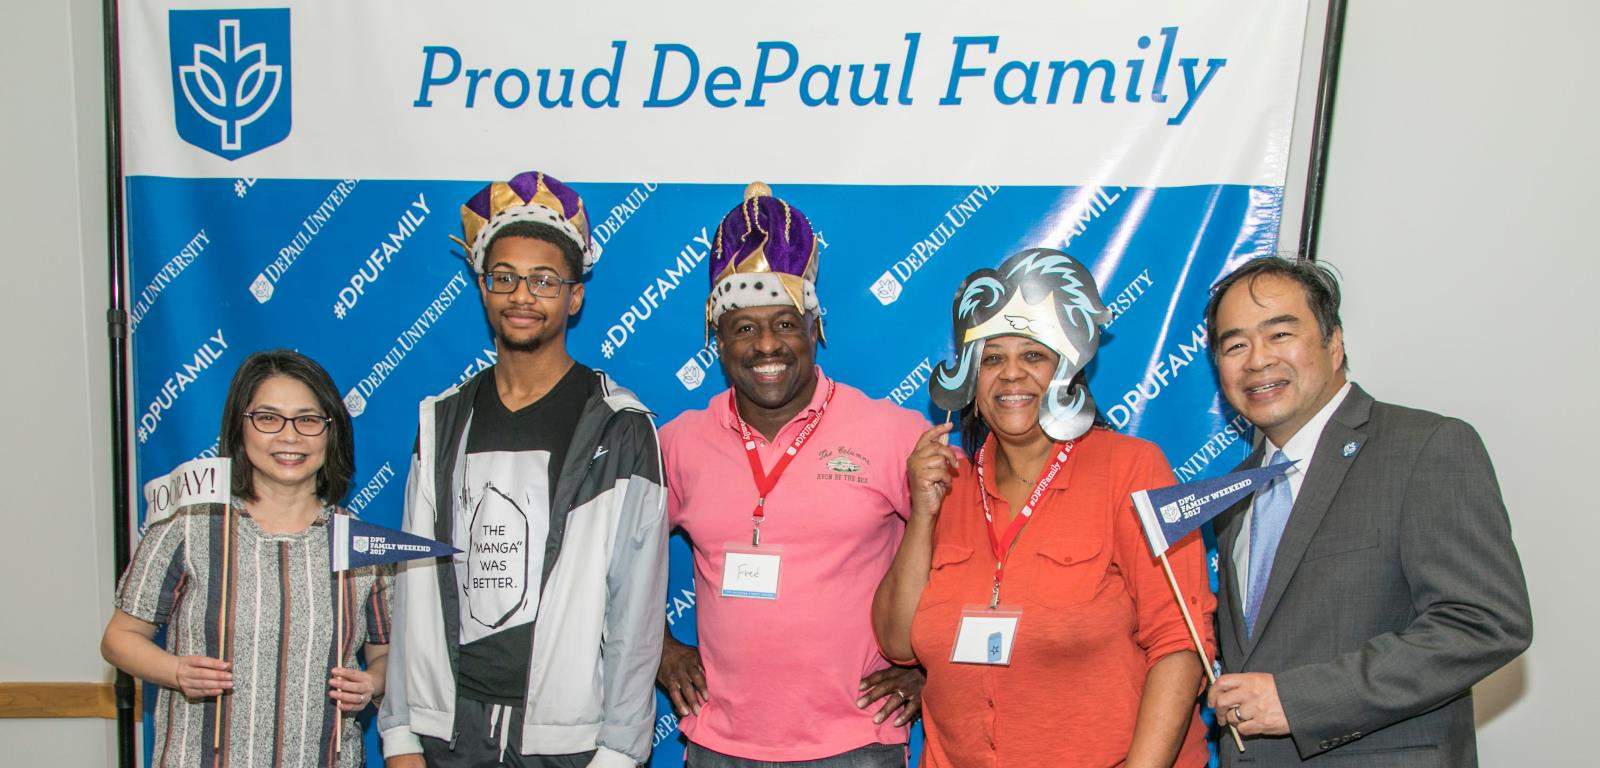 University President with family of DePaul Students